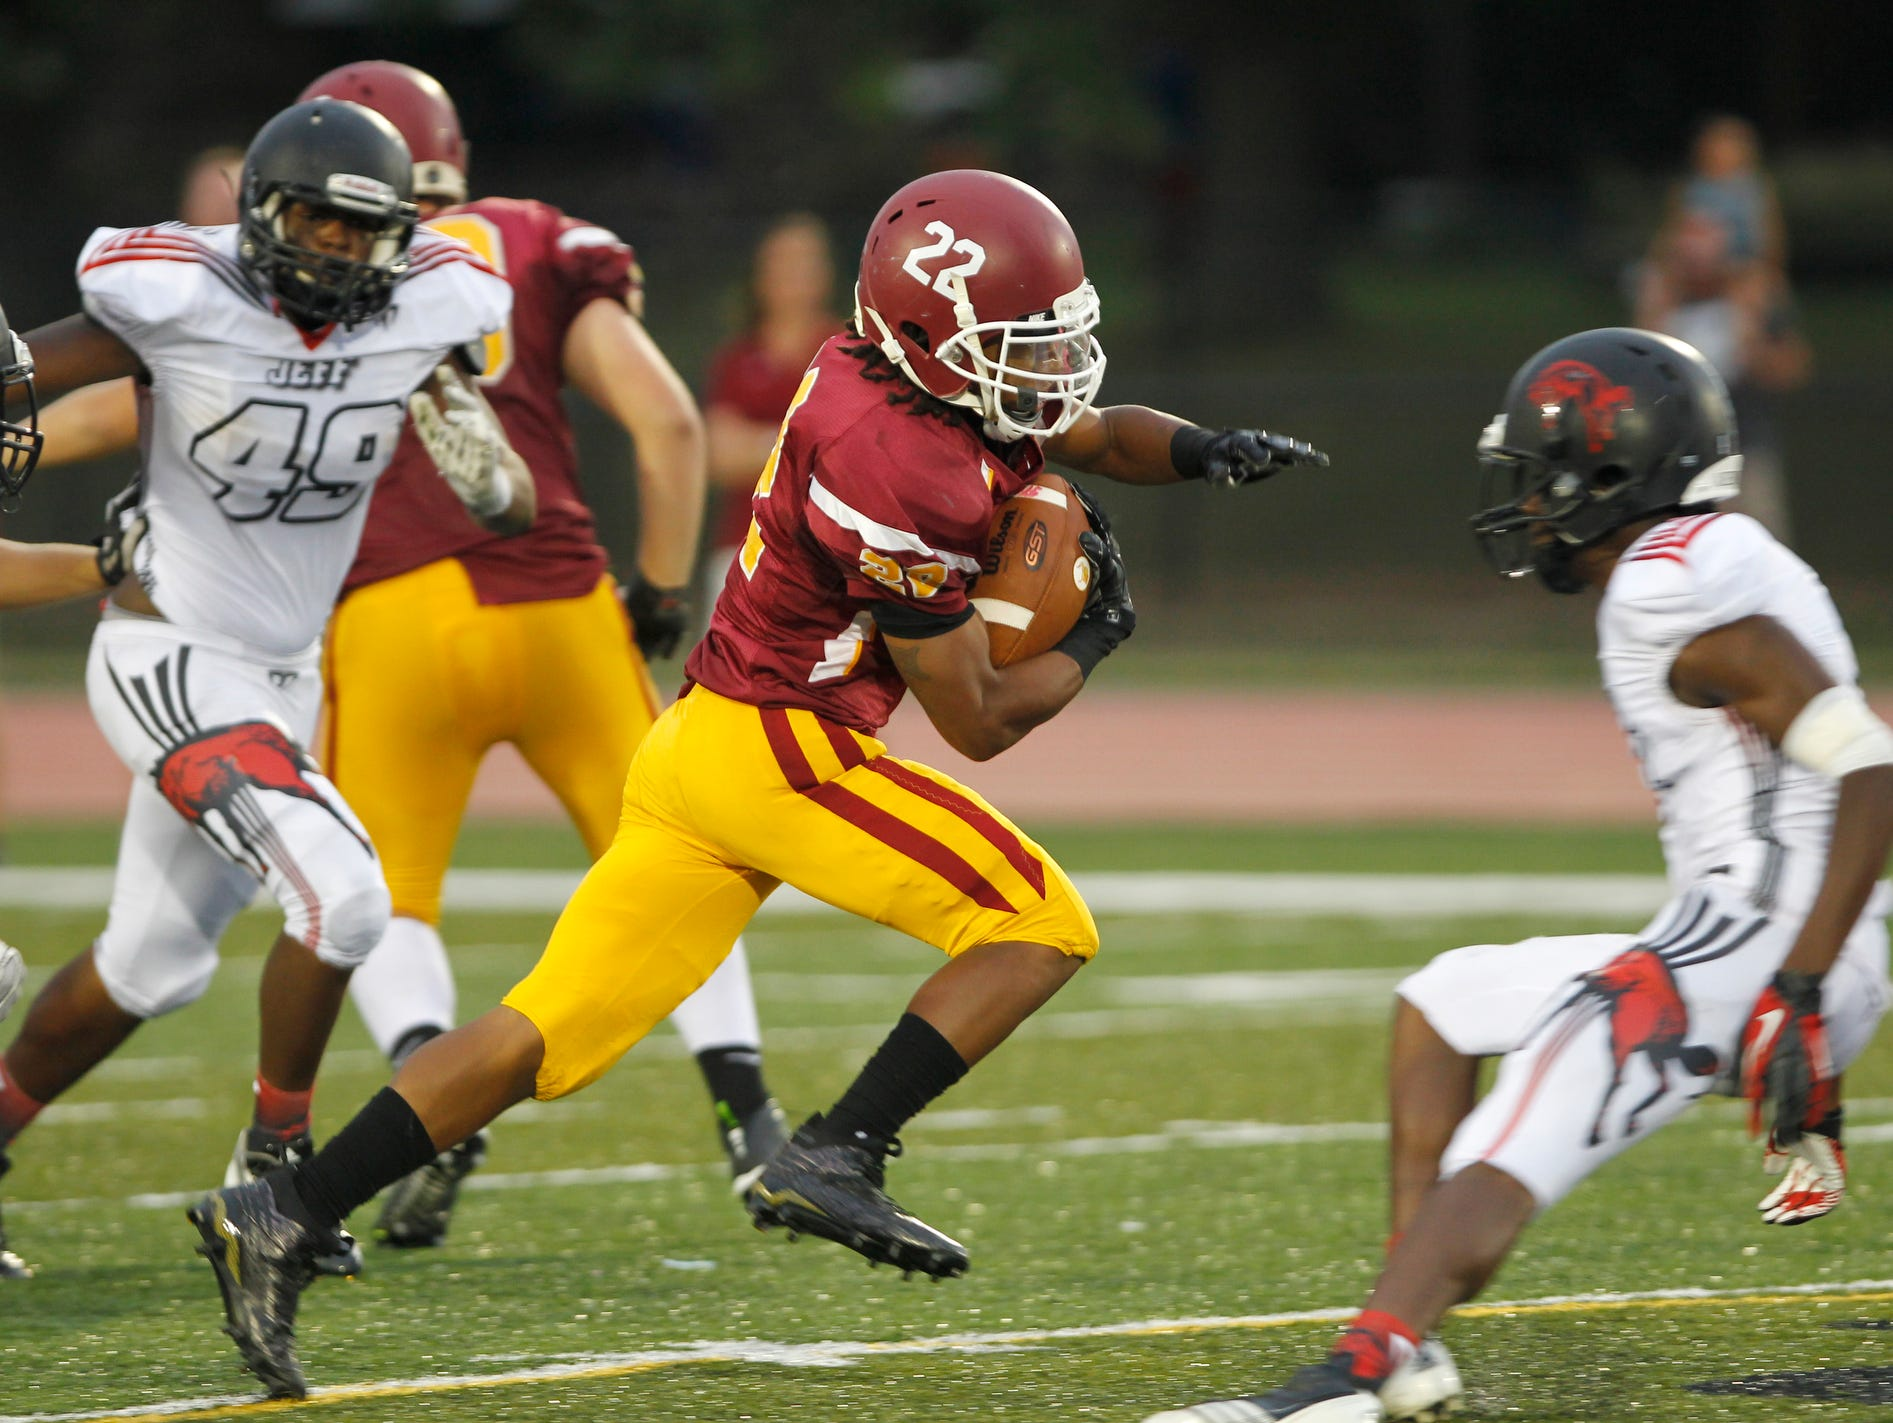 McCutcheon's Levon Thompson shoots through the Lafayette Jeff defense on a 66 yard touchdown run at 9:18 in the second quarter Friday, September 4, 2015, at Scheumann Stadium. McCutcheon beat Lafayette Jeff 38-20.